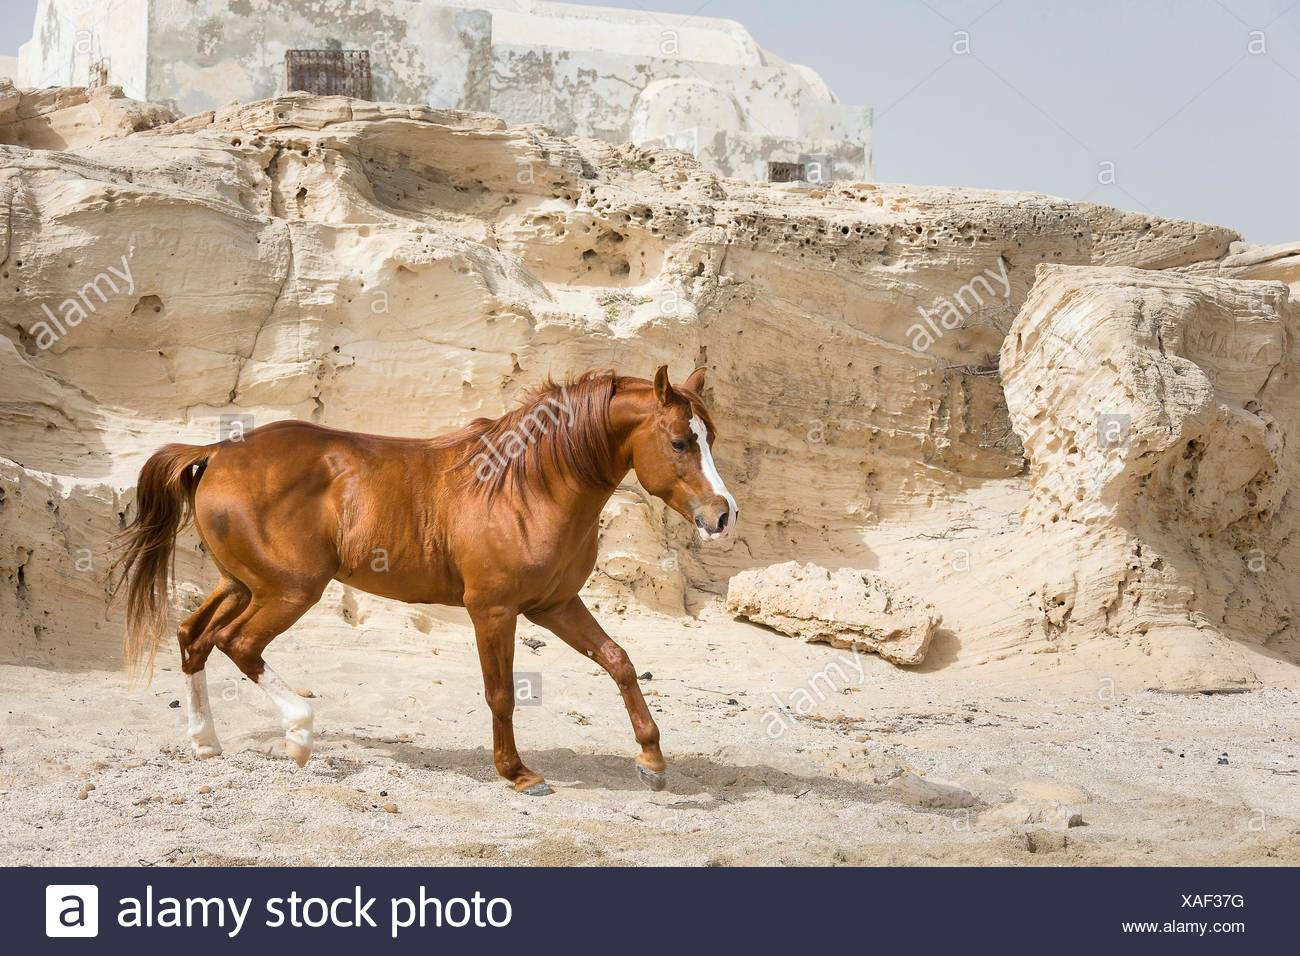 Arab Horse. Chestnut stallion walking on a beach with rocks in background. Tunisia Stock Photo